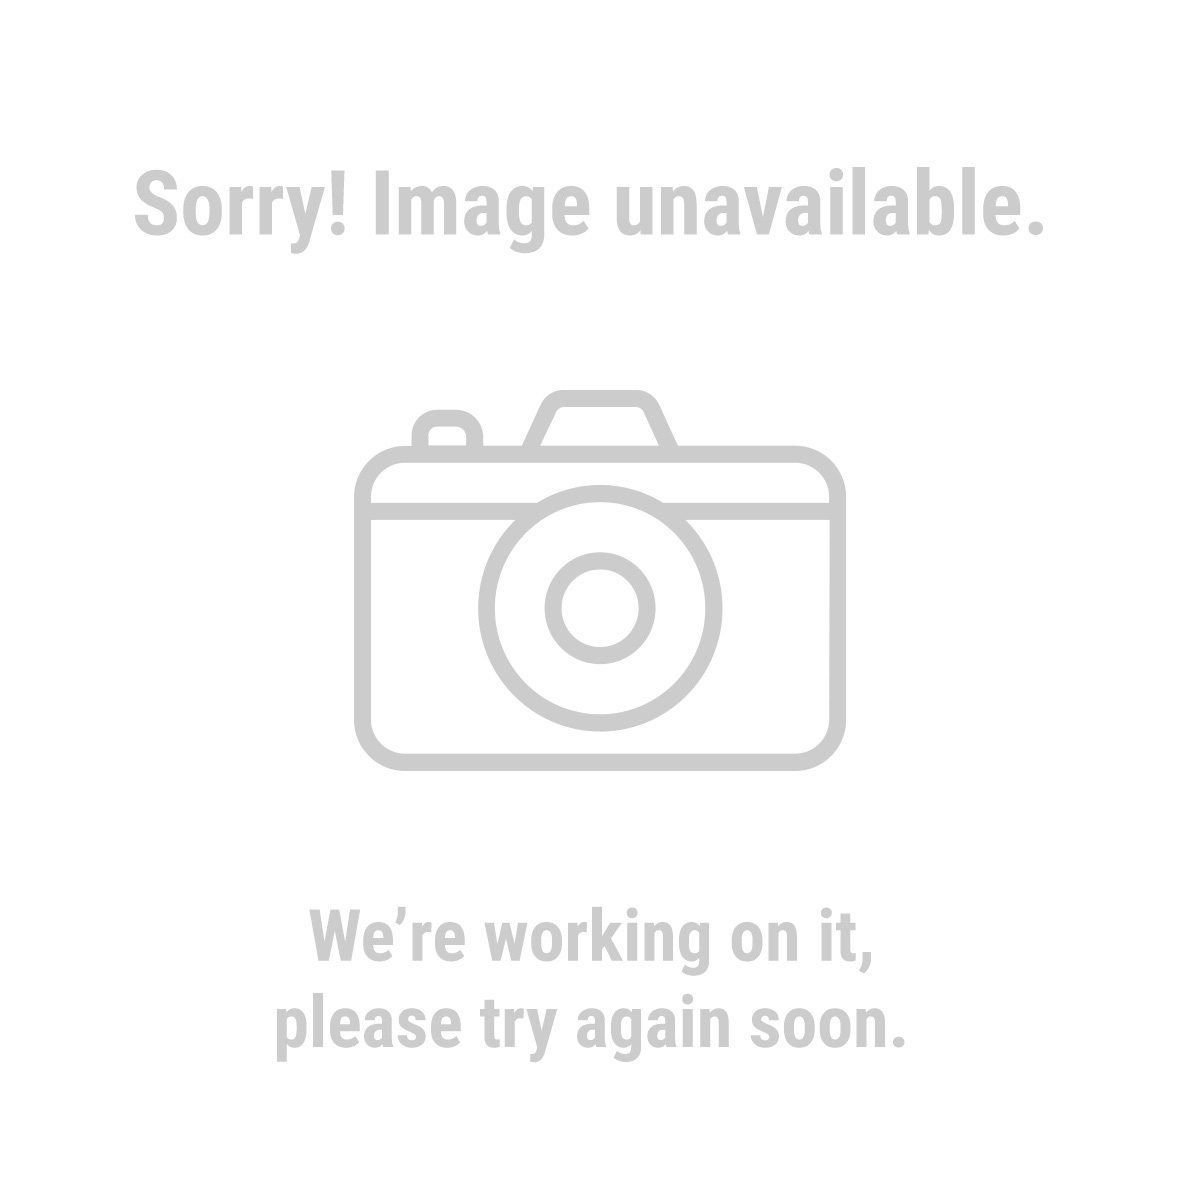 Pittsburgh Automotive 61381 18 Piece Disc Brake Pad and Caliper Service Tool Kit